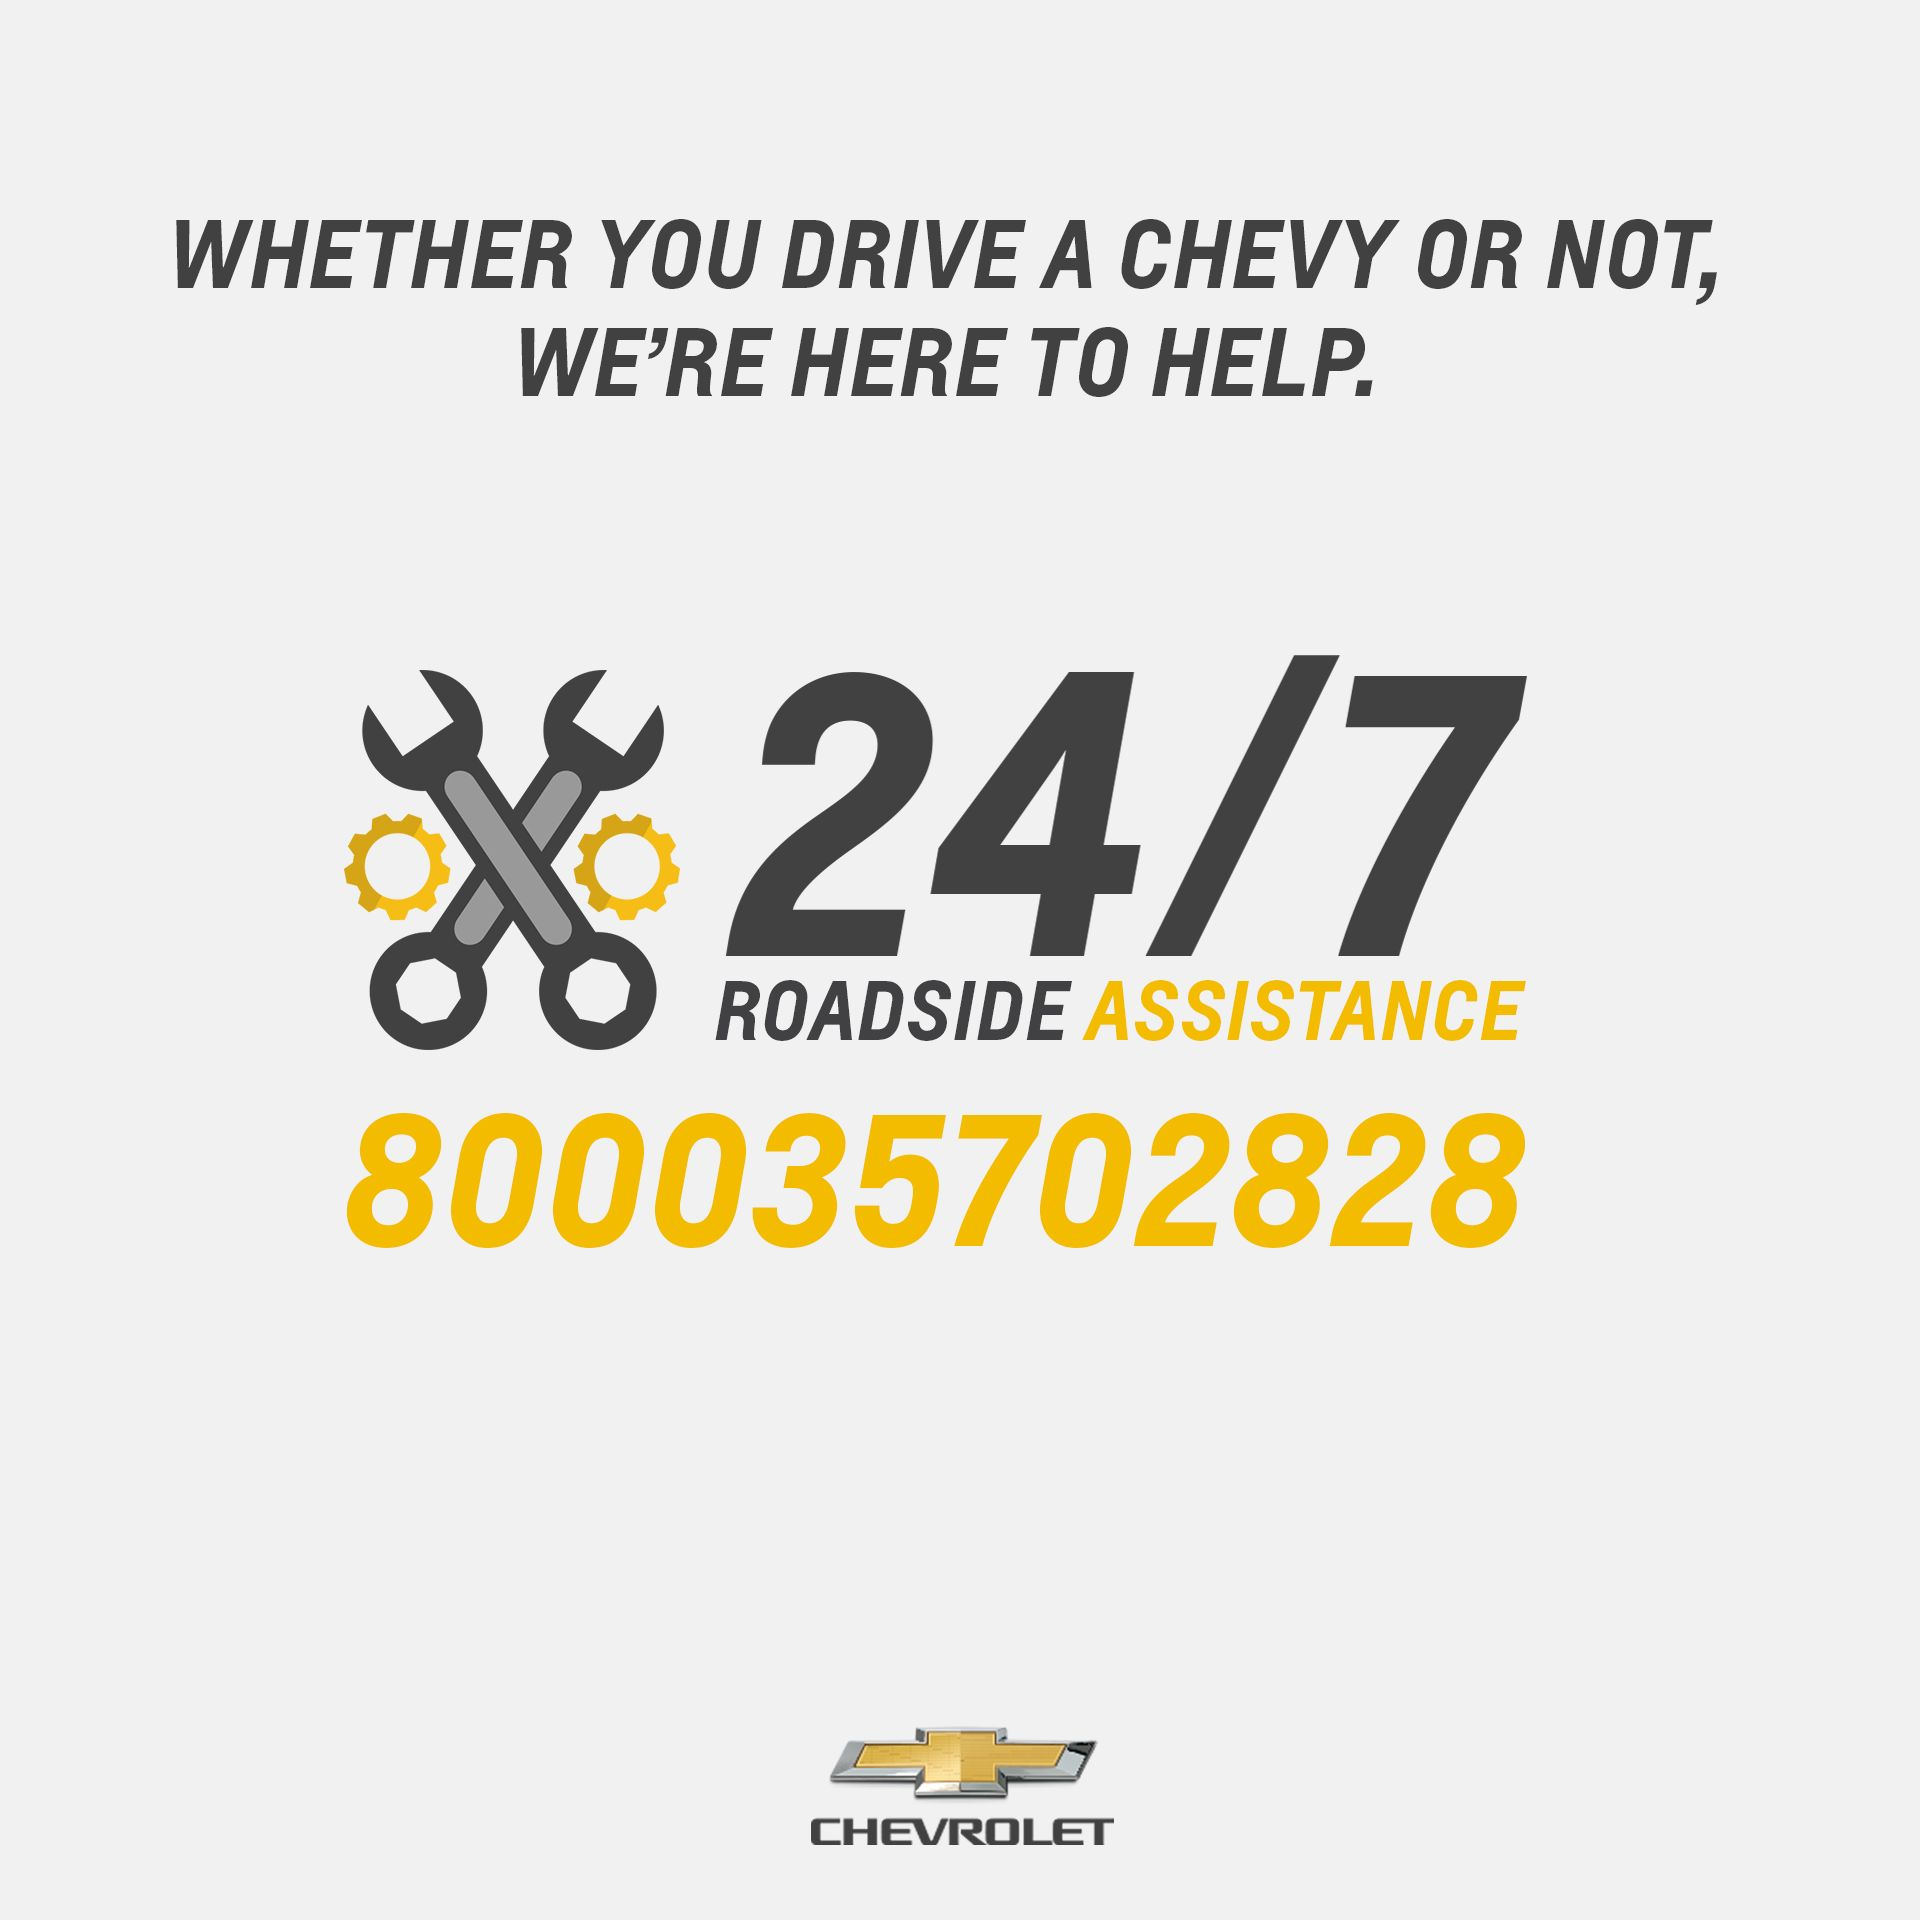 Chevrolet to Offer Women Drivers in Saudi 24/7 Roadside Assistance Irrespective of Brand